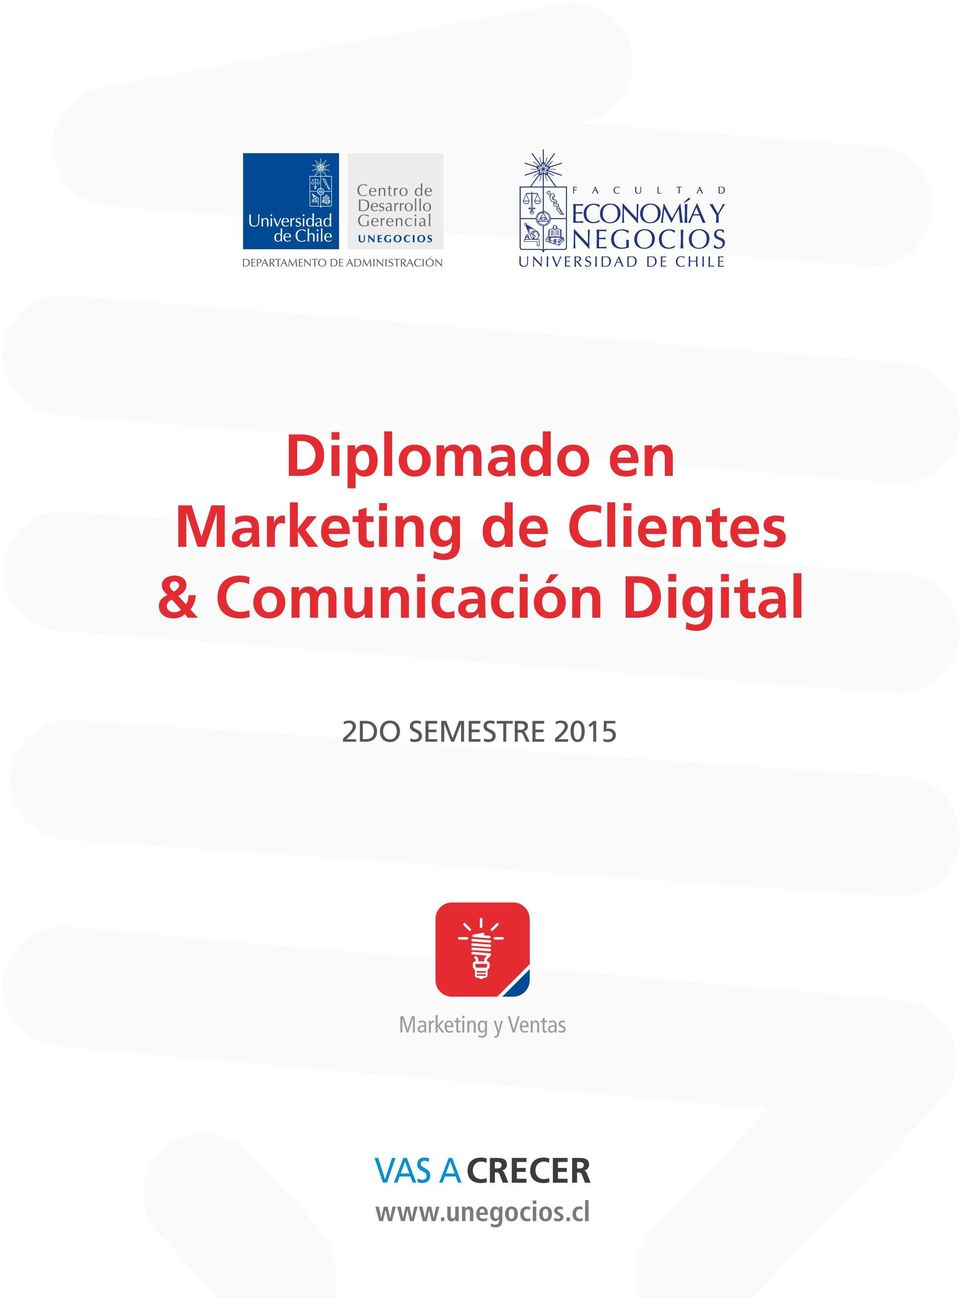 Digital 2DO SEMESTRE 2015